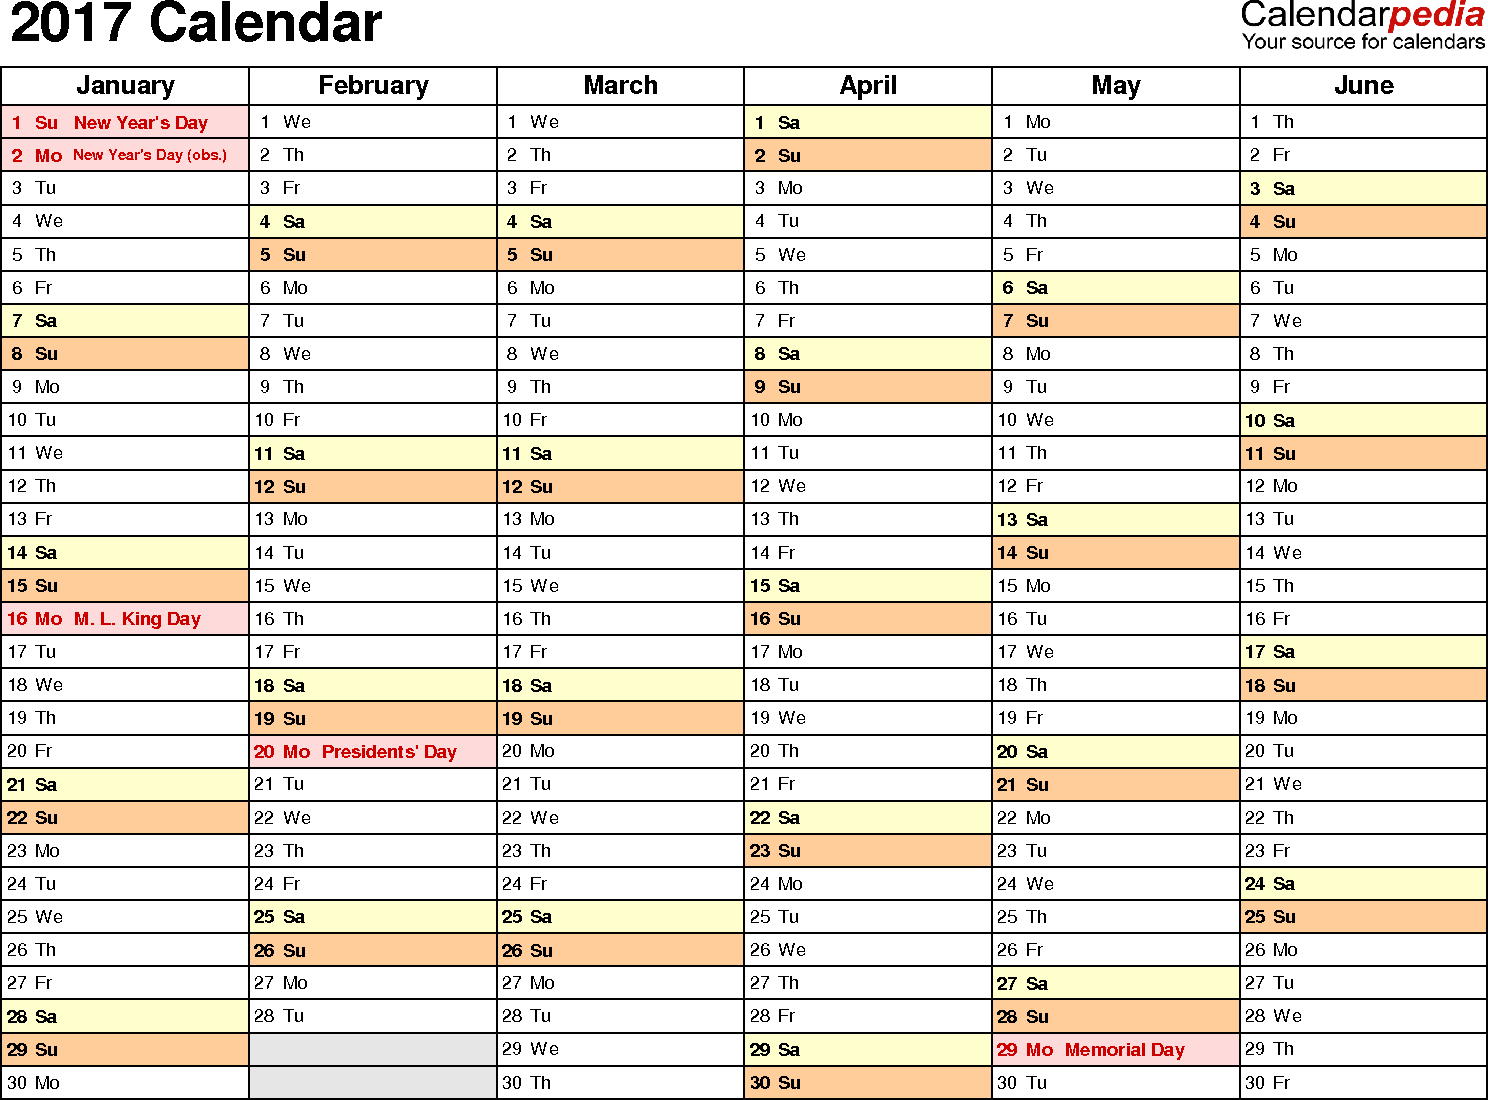 Ediblewildsus  Inspiring  Calendar  Download  Free Printable Excel Templates Xls With Exciting Template   Calendar For Excel Months Horizontally  Pages Landscape Orientation With Astonishing Rounding Formula In Excel Also Excel To Xml Converter In Addition Counting Cells In Excel And Exclamation Point In Excel As Well As How To Get Excel On Mac Additionally Excel Formula Text From Calendarpediacom With Ediblewildsus  Exciting  Calendar  Download  Free Printable Excel Templates Xls With Astonishing Template   Calendar For Excel Months Horizontally  Pages Landscape Orientation And Inspiring Rounding Formula In Excel Also Excel To Xml Converter In Addition Counting Cells In Excel From Calendarpediacom